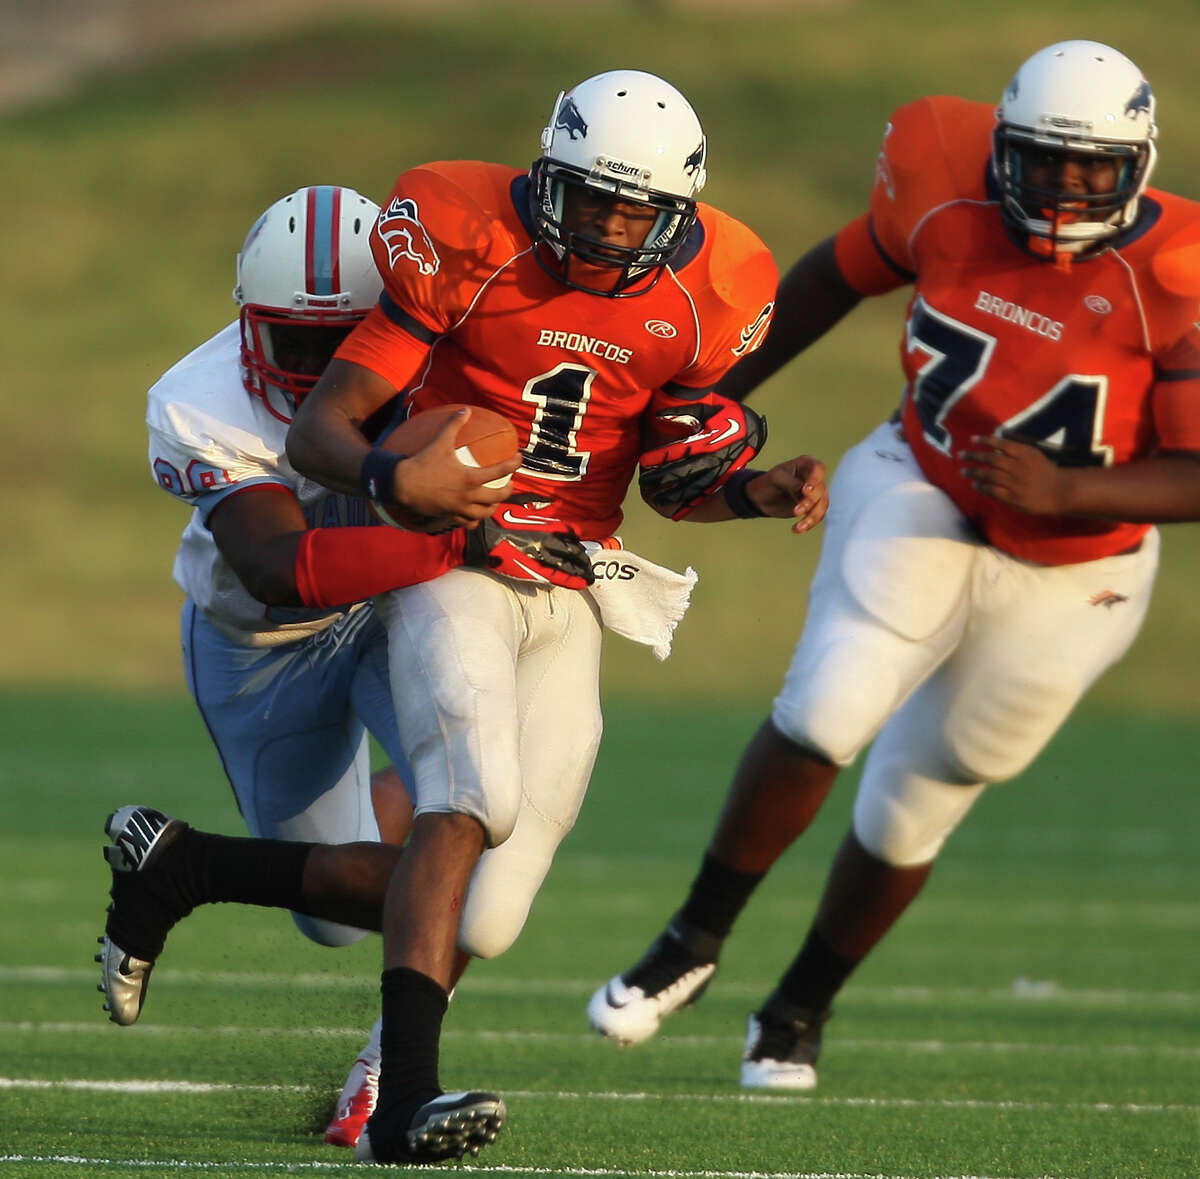 Bush quarterback Ronald Monroe (1) is tackled by Madison's Kerwin Green during the first half of a high school football game, Saturday, September 8, 2012, at Mercer Stadium in Sugar Land, TX.